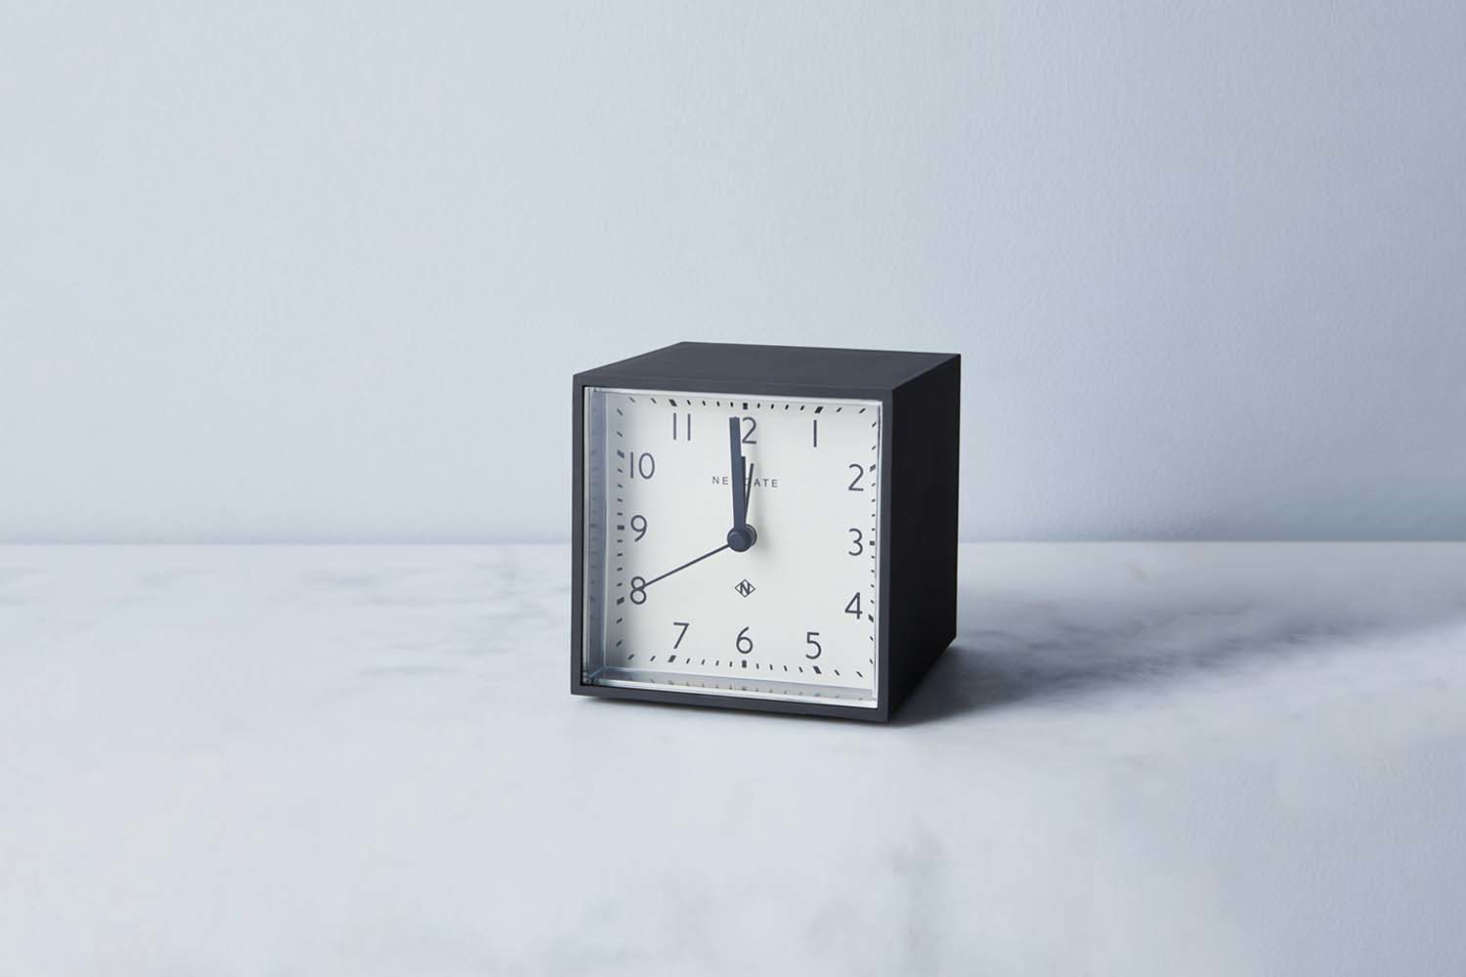 The Newgate Clocks Cubic Alarm Clock in black is $48 at Food5